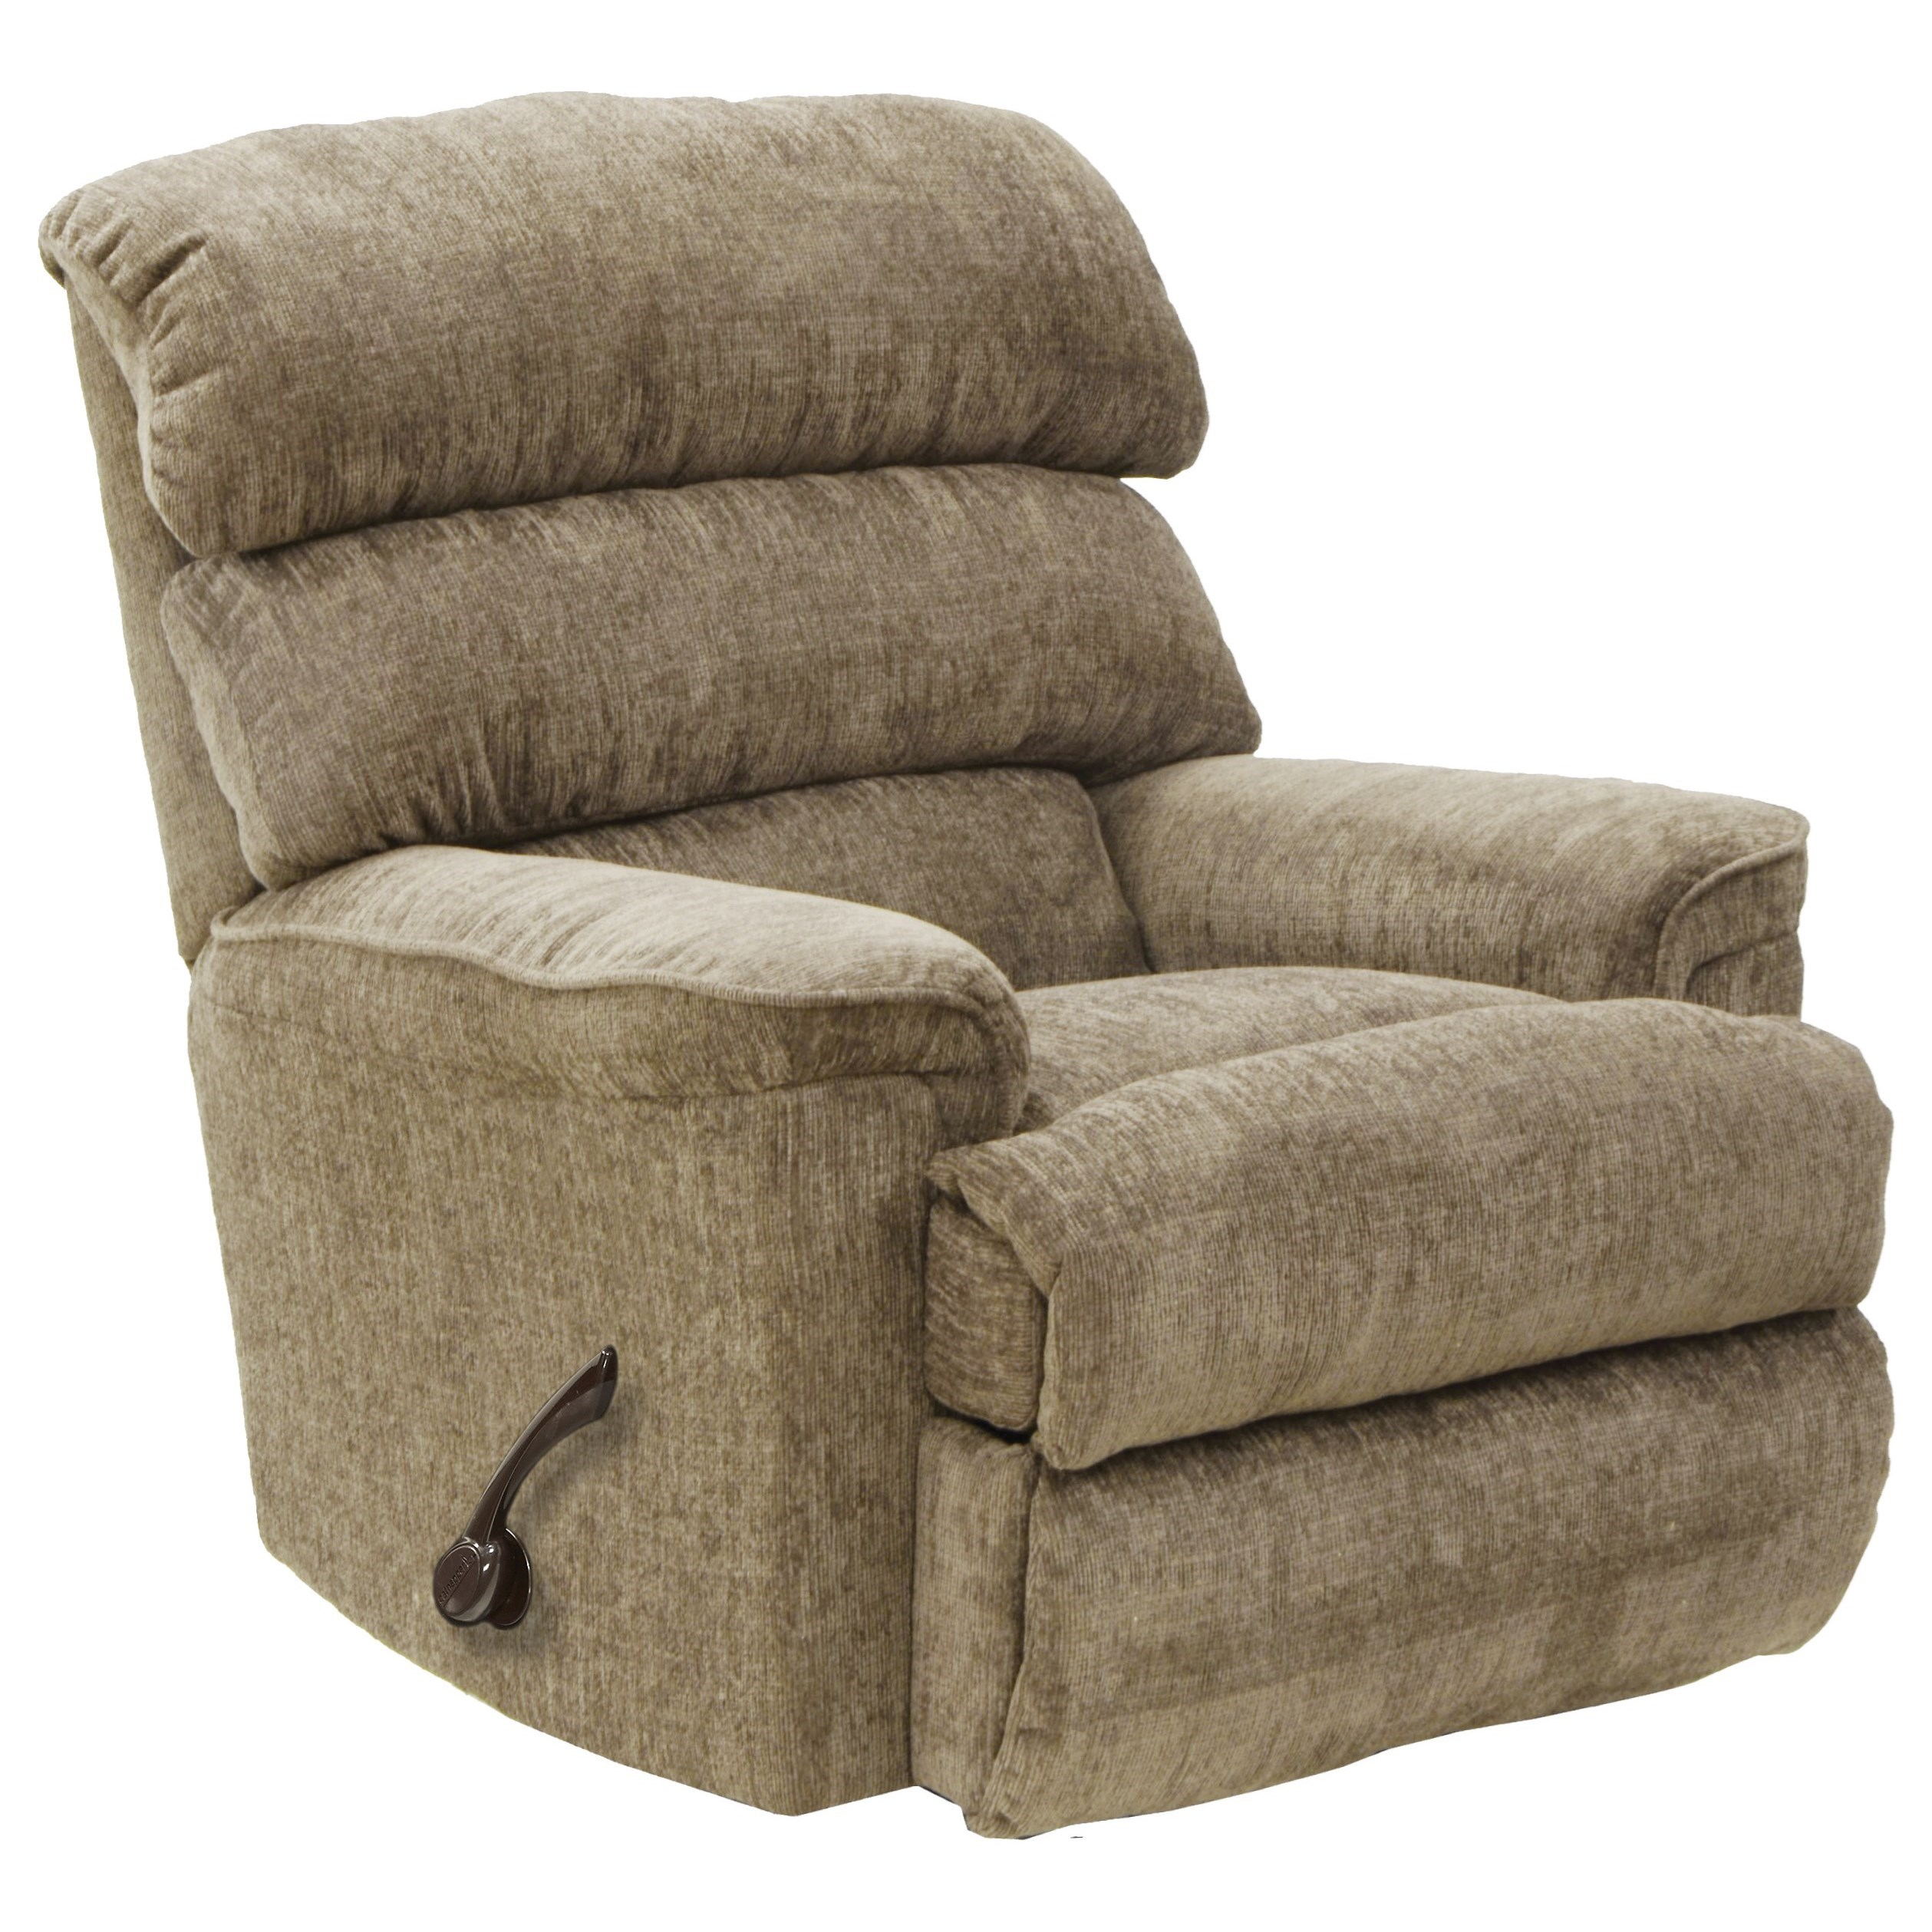 Pearson Chaise Rocker Recliner by Catnapper at Bullard Furniture